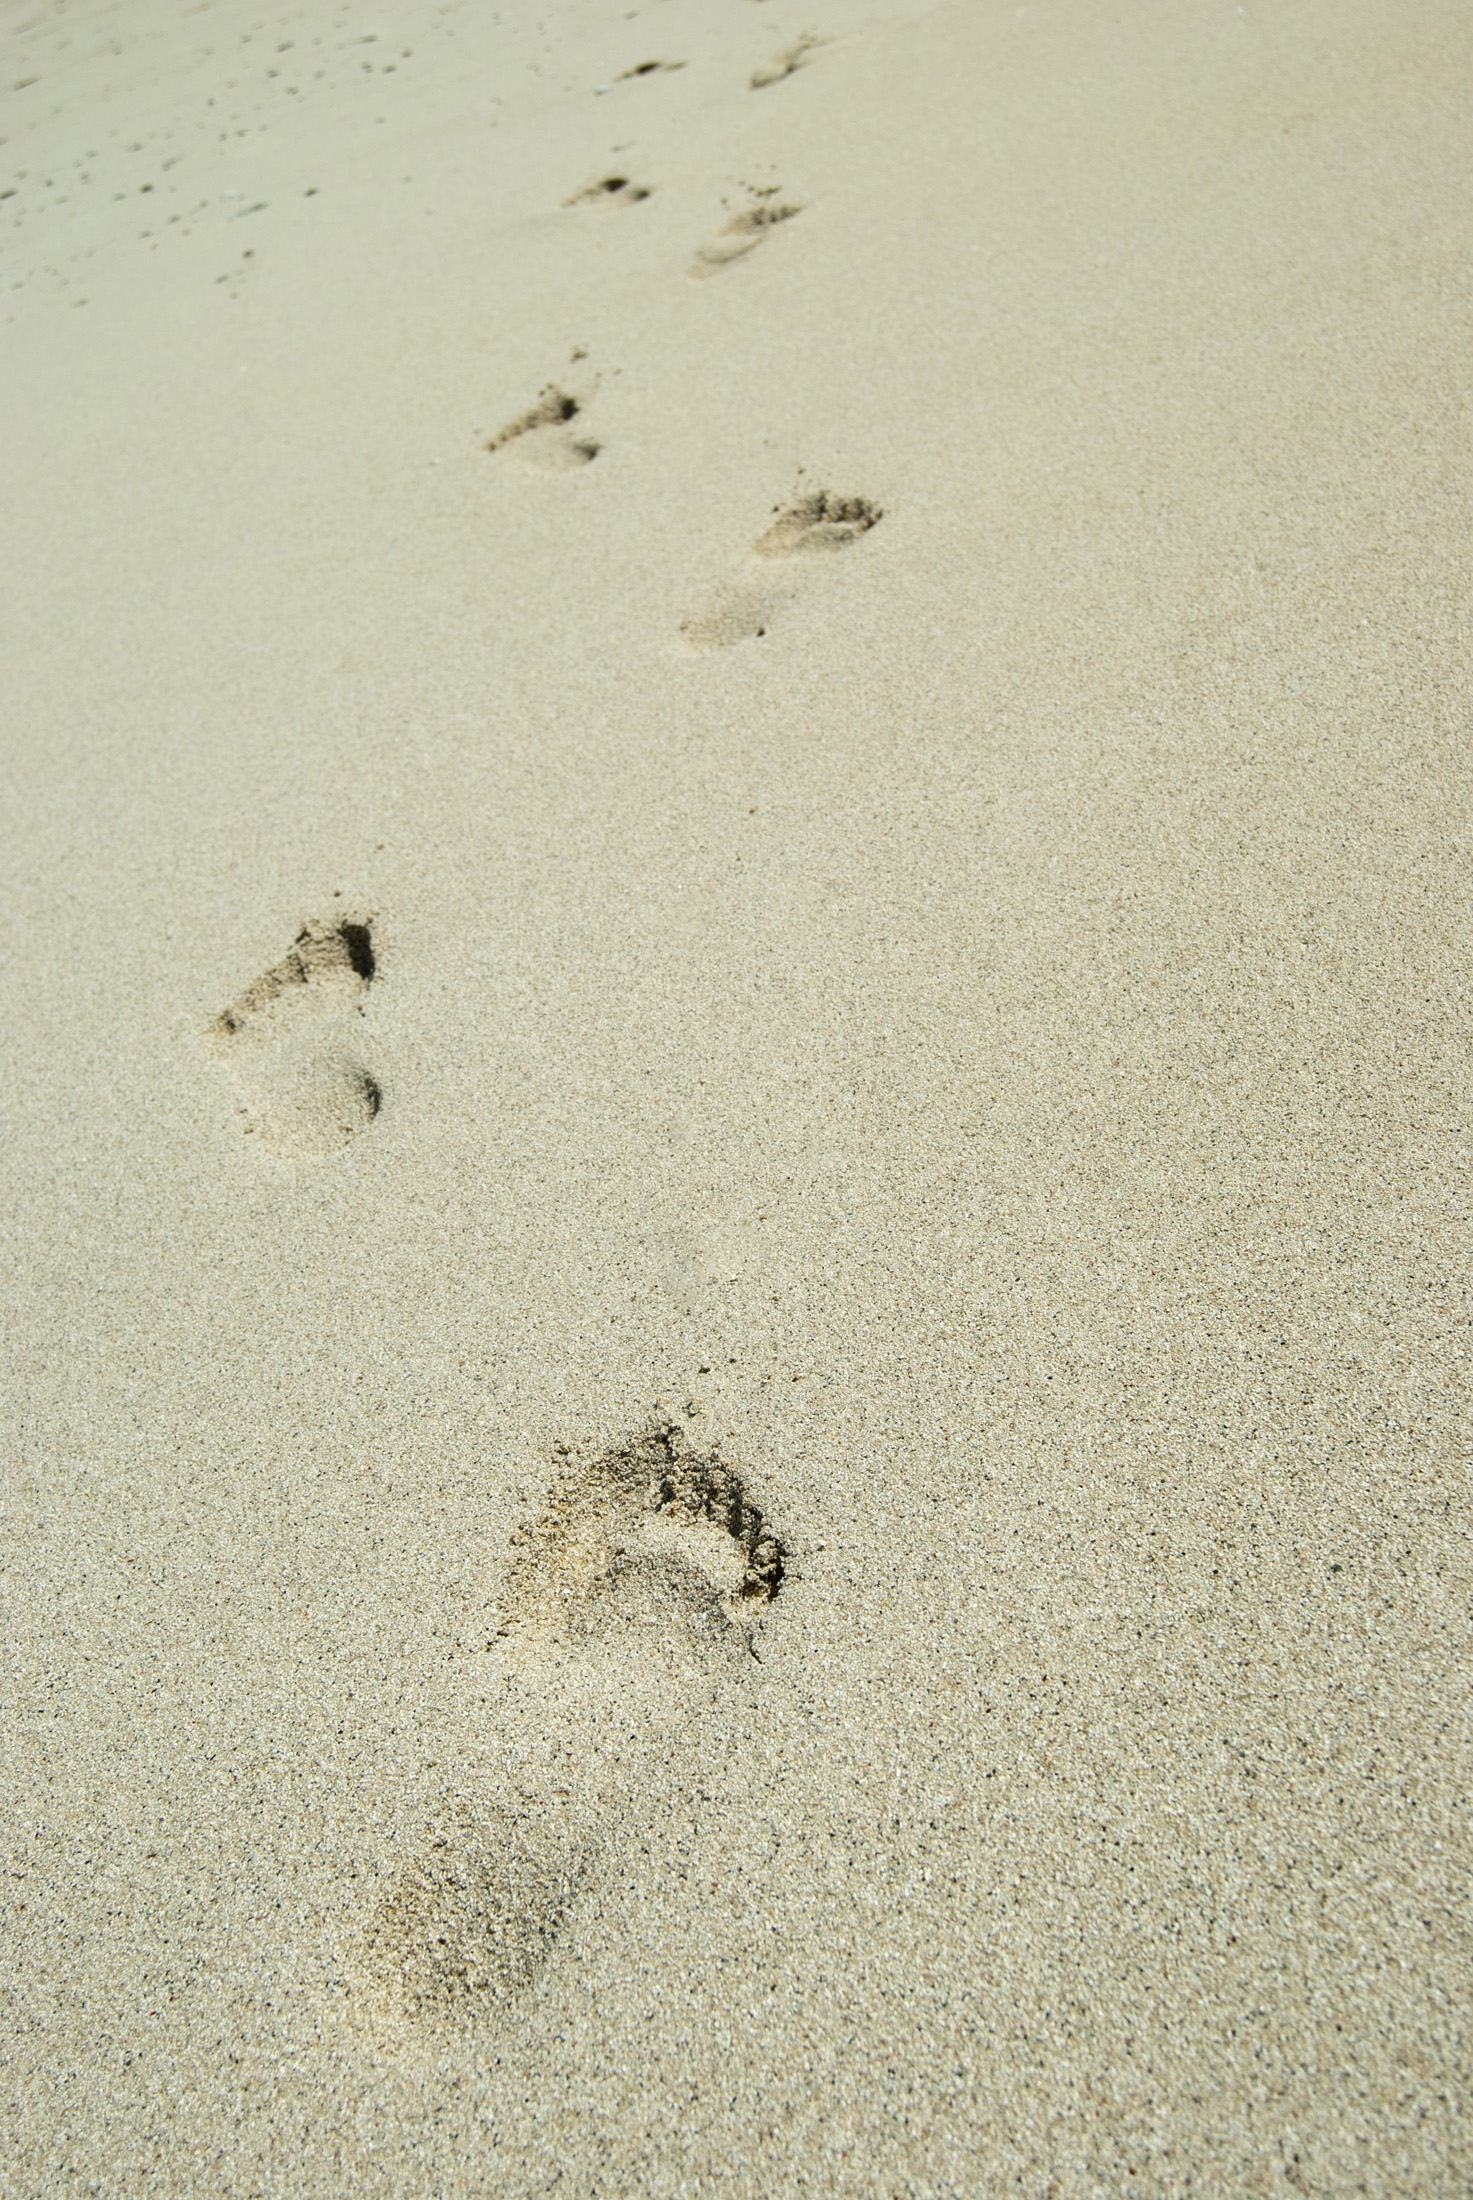 Barefoot footprints on a sandy beach leading away from the camera